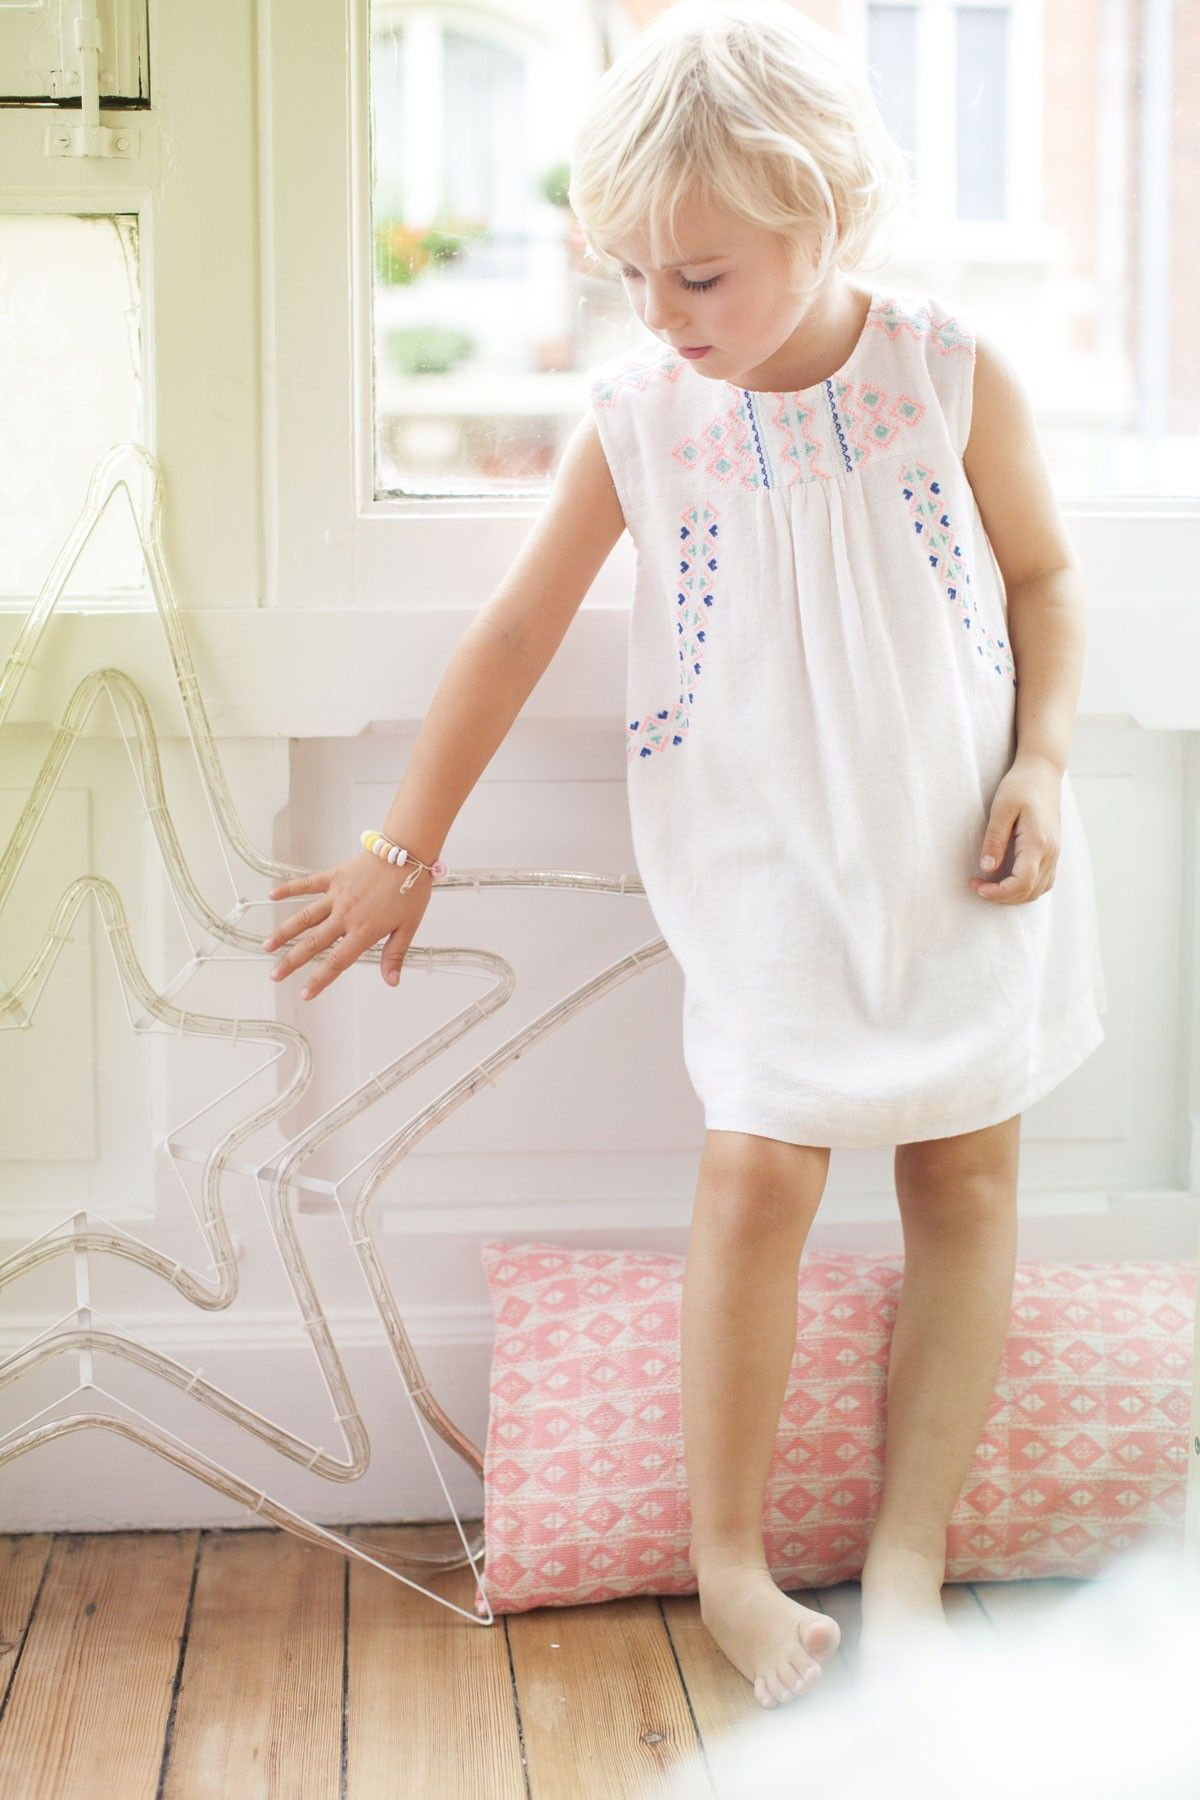 Bora Dress - Bonheur du Jour Online - Baby, Kids & Teens Webshop Goldfish.be - Goldfish Kids Web Store Mechelen